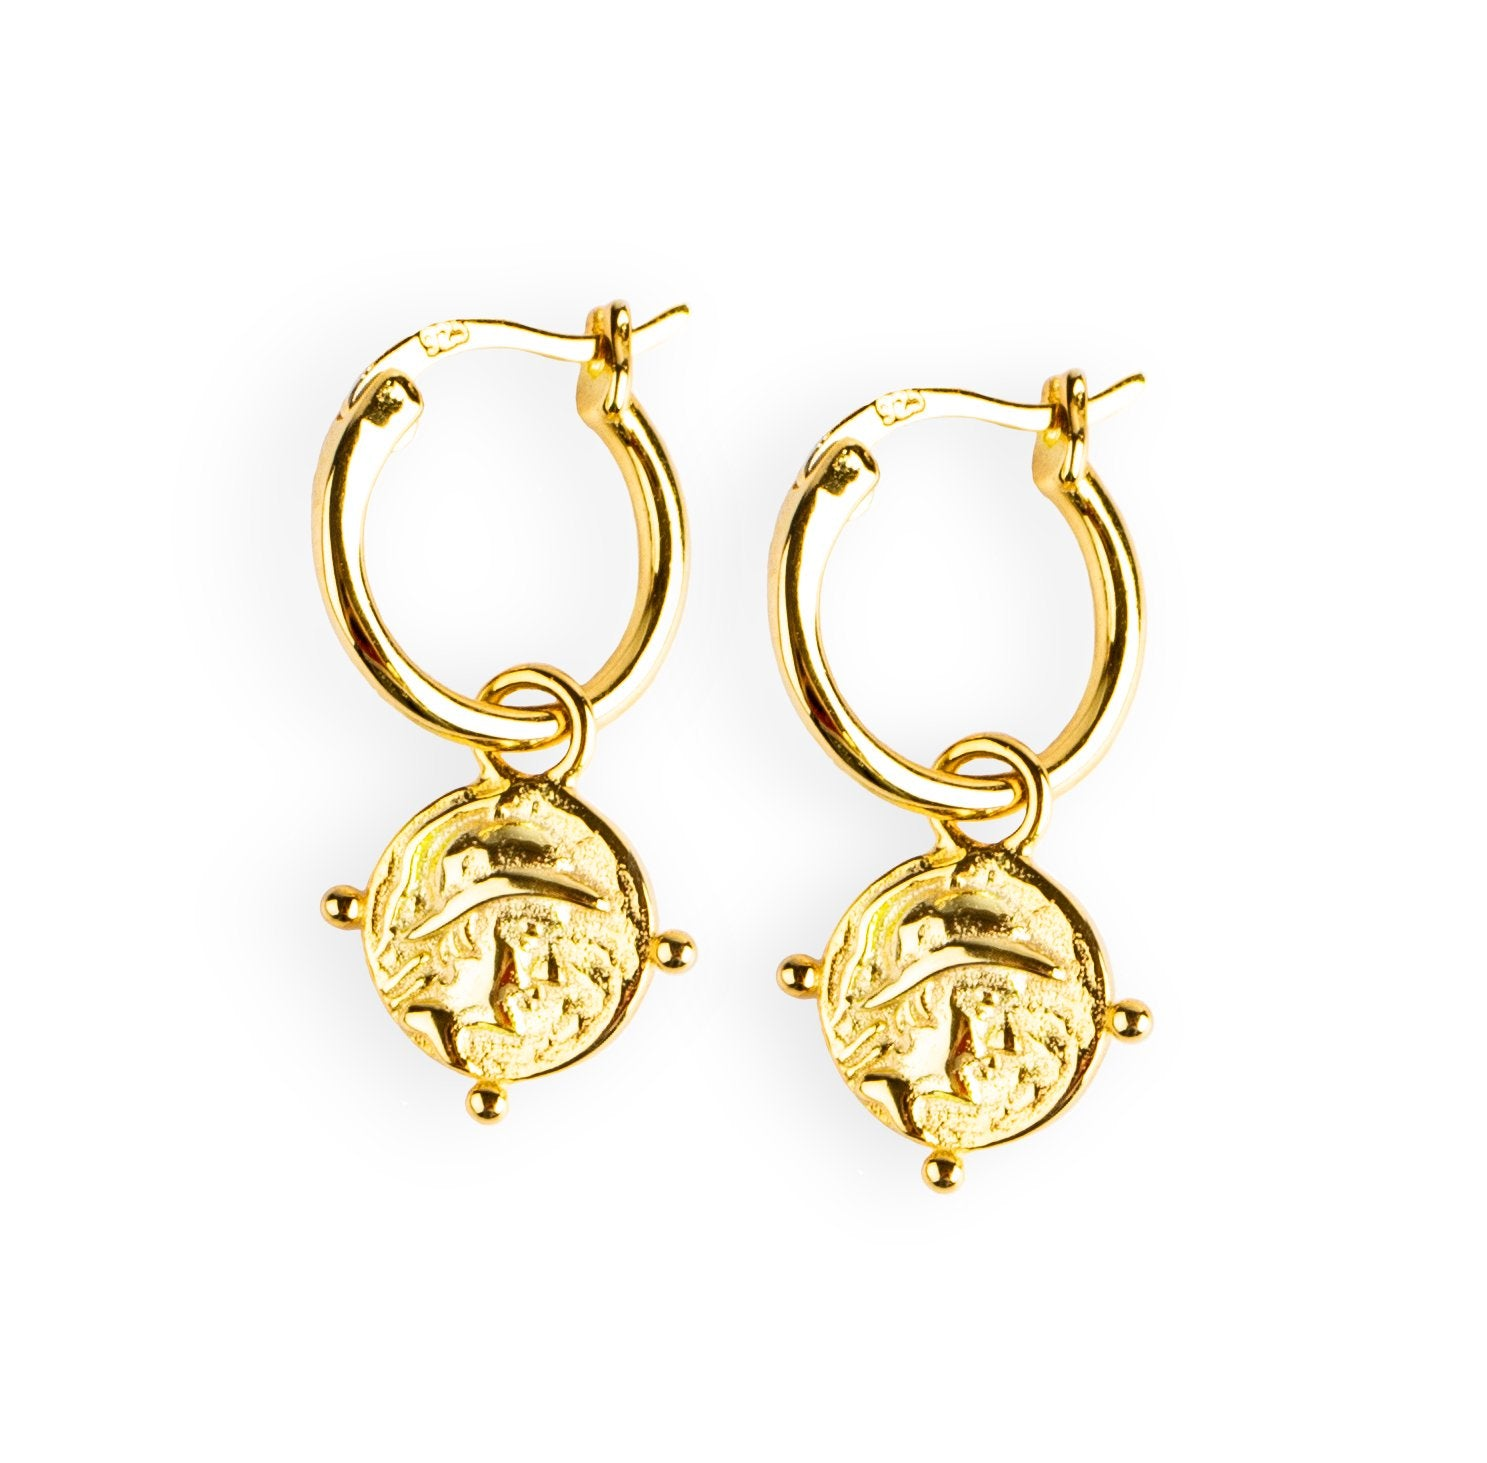 Roman Coin Earrings Gold - Wildflowers